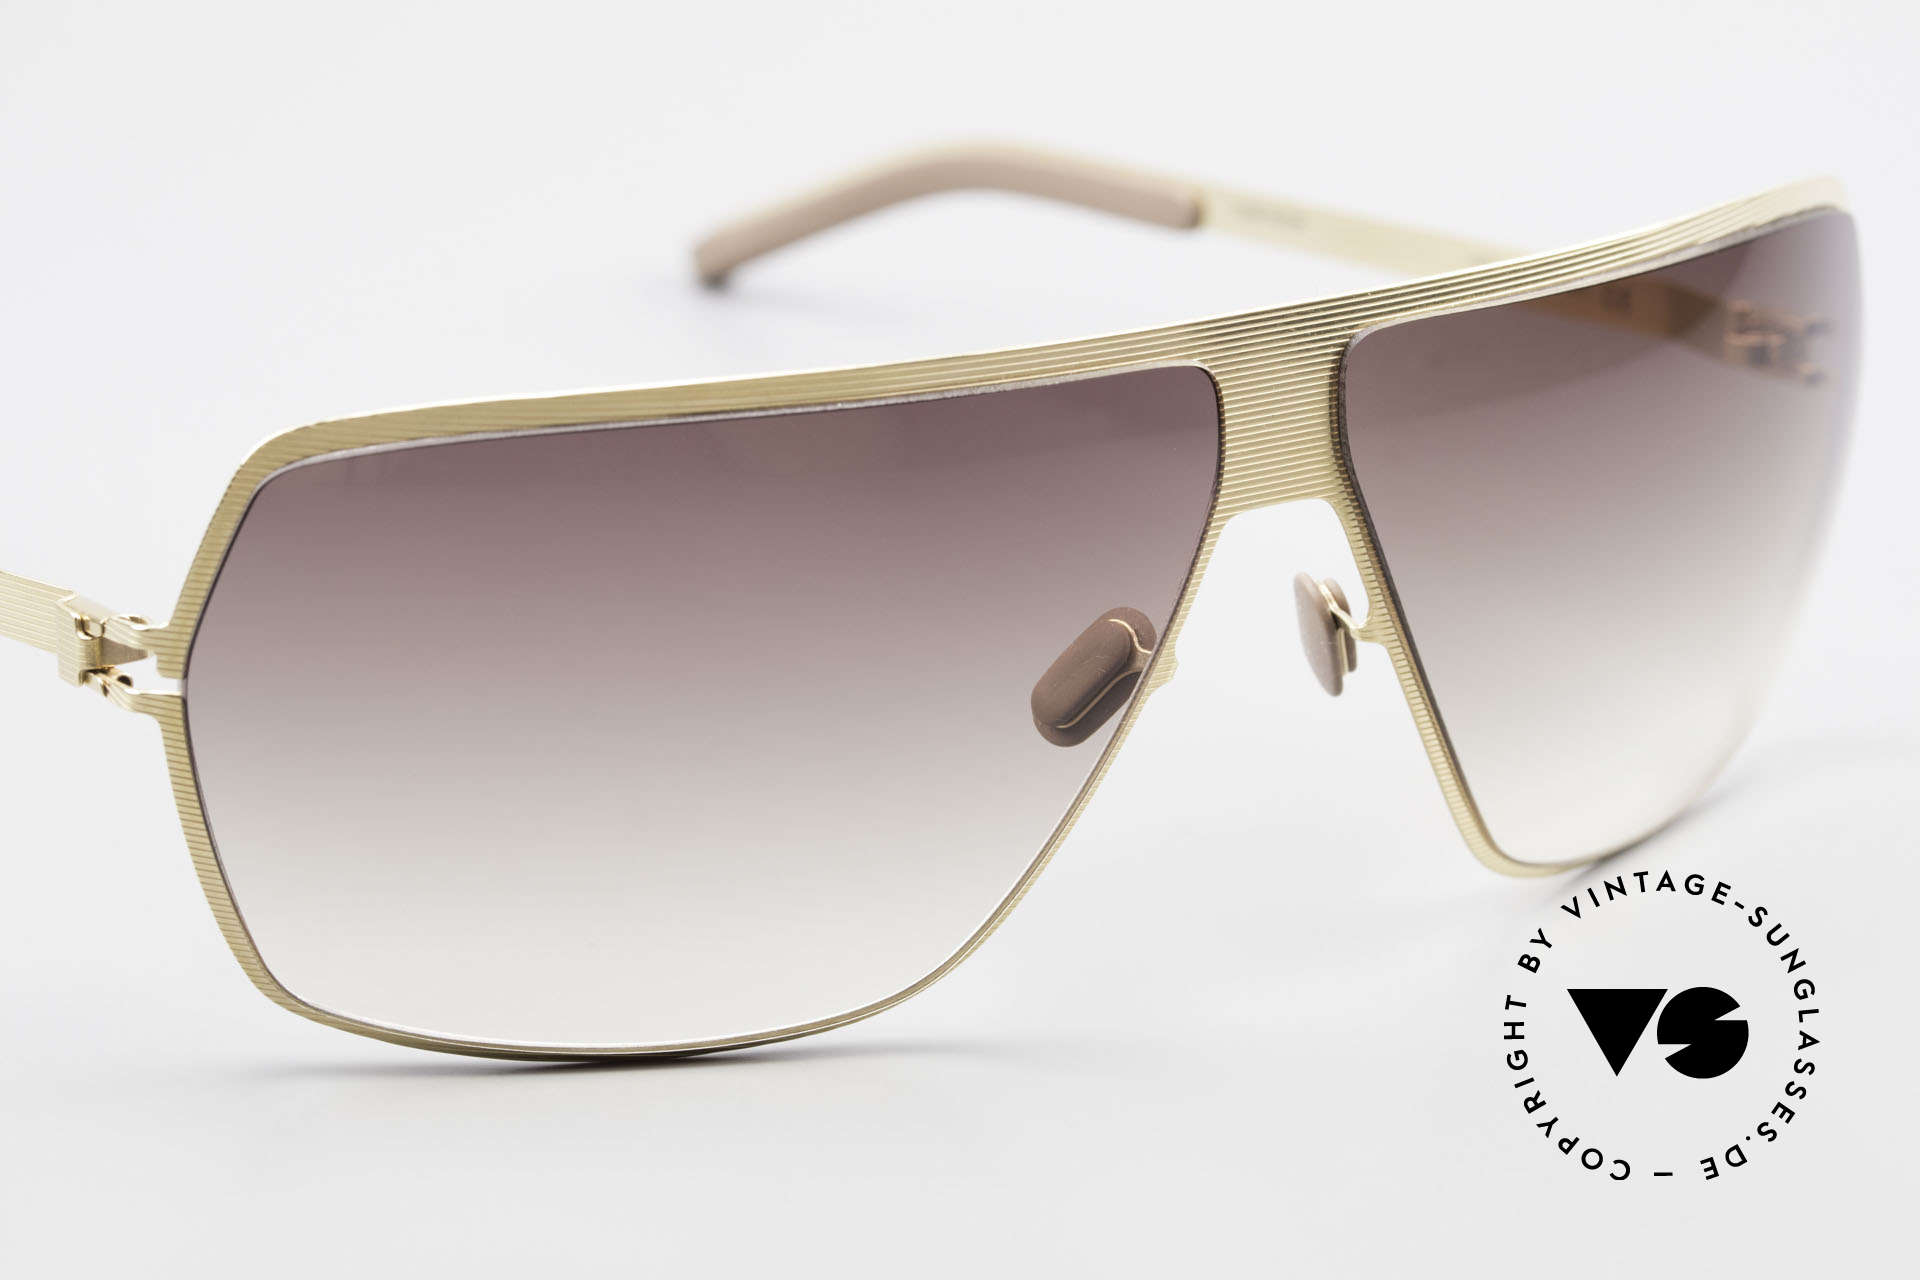 Mykita Rock Vintage No 1 Collection 2009, top-notch quality, made in Germany (Berlin-Kreuzberg), Made for Men